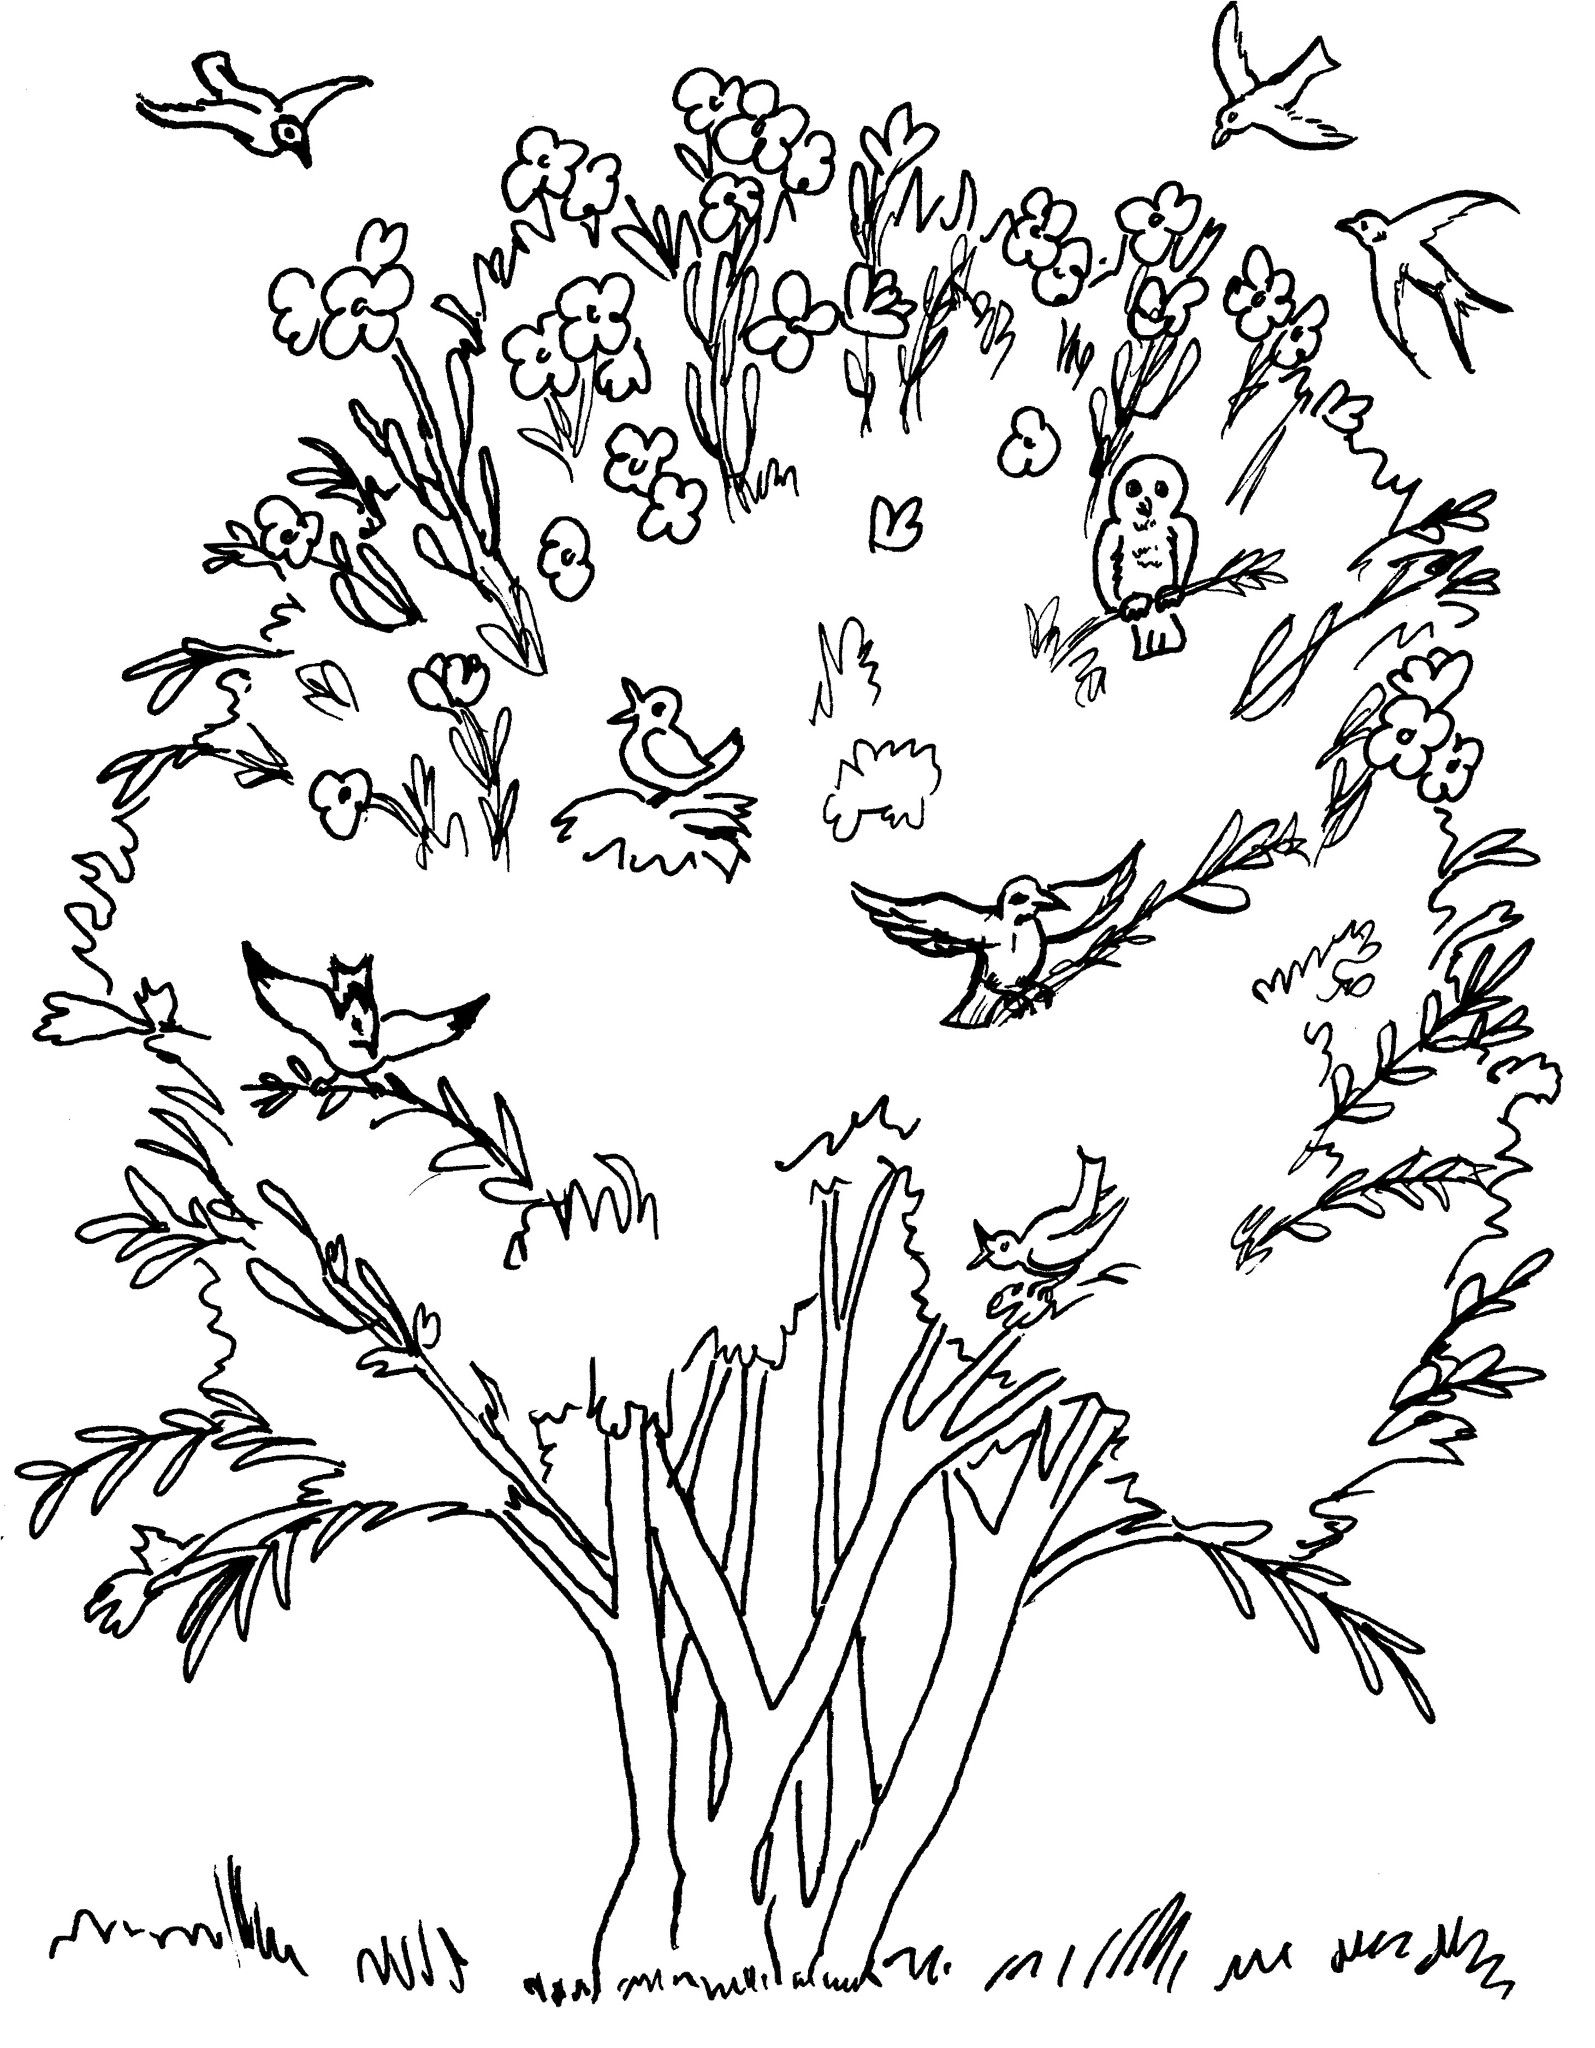 Parable Of The Mustard Seed Coloring Pages Mustard Seed Parable Tree Coloring Page Mustard Seed